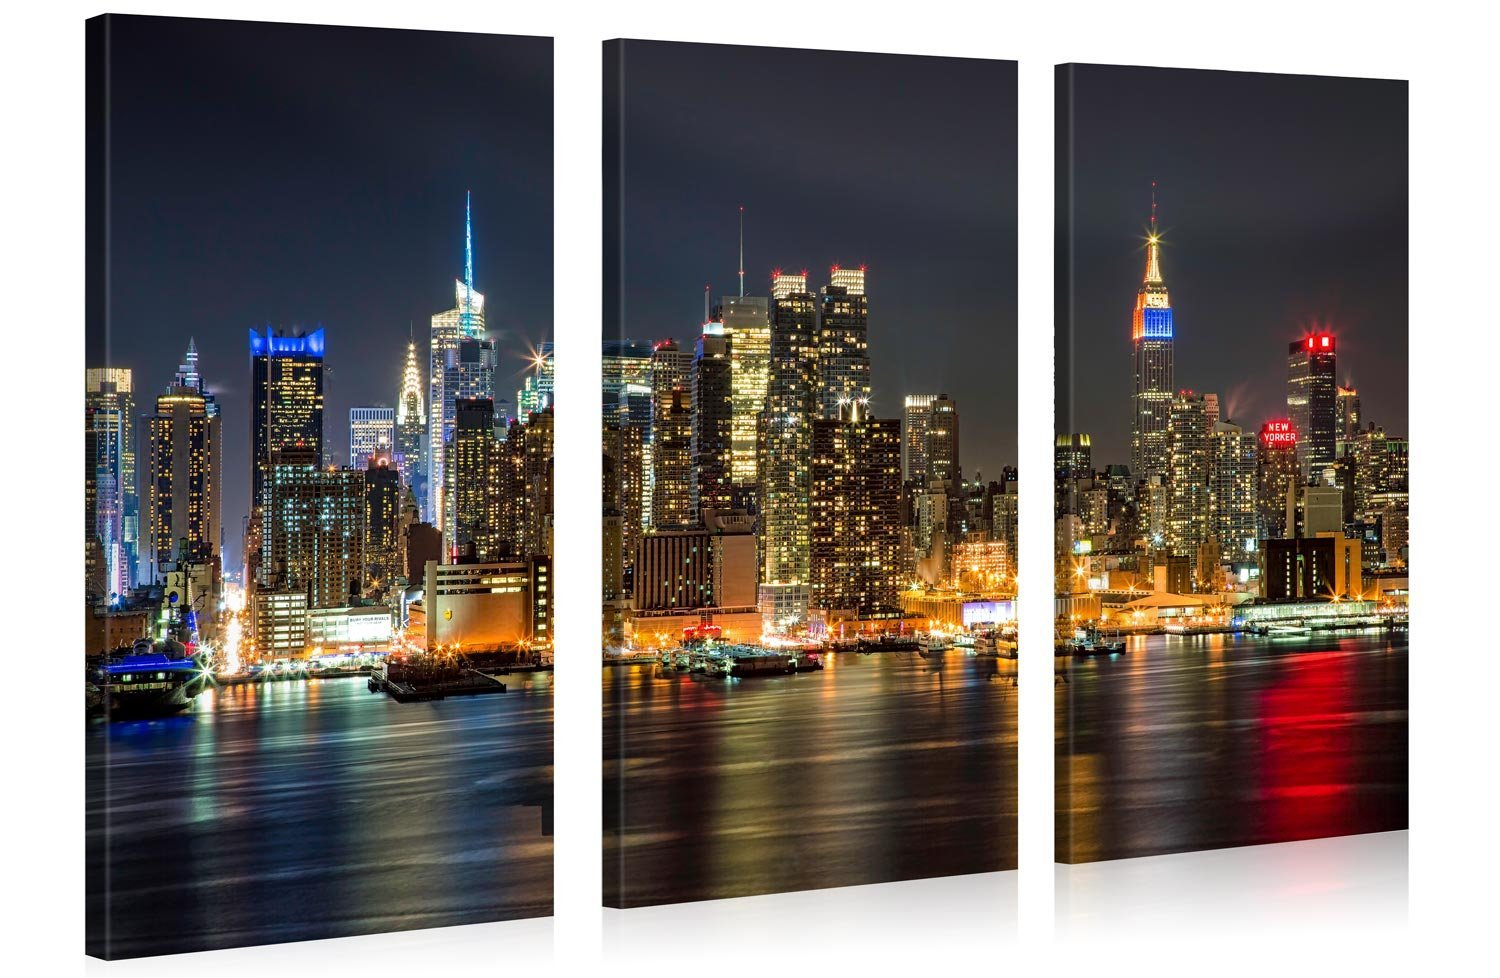 Large Canvas Print Wall Art – MANHATTAN NIGHT LIGHTS – 48x30 Inch – 3 panel New York Cityscape Canvas Picture Stretched On A Wooden Frame – Giclee Canvas Printing – Hanging Wall Deco Picture / e4350